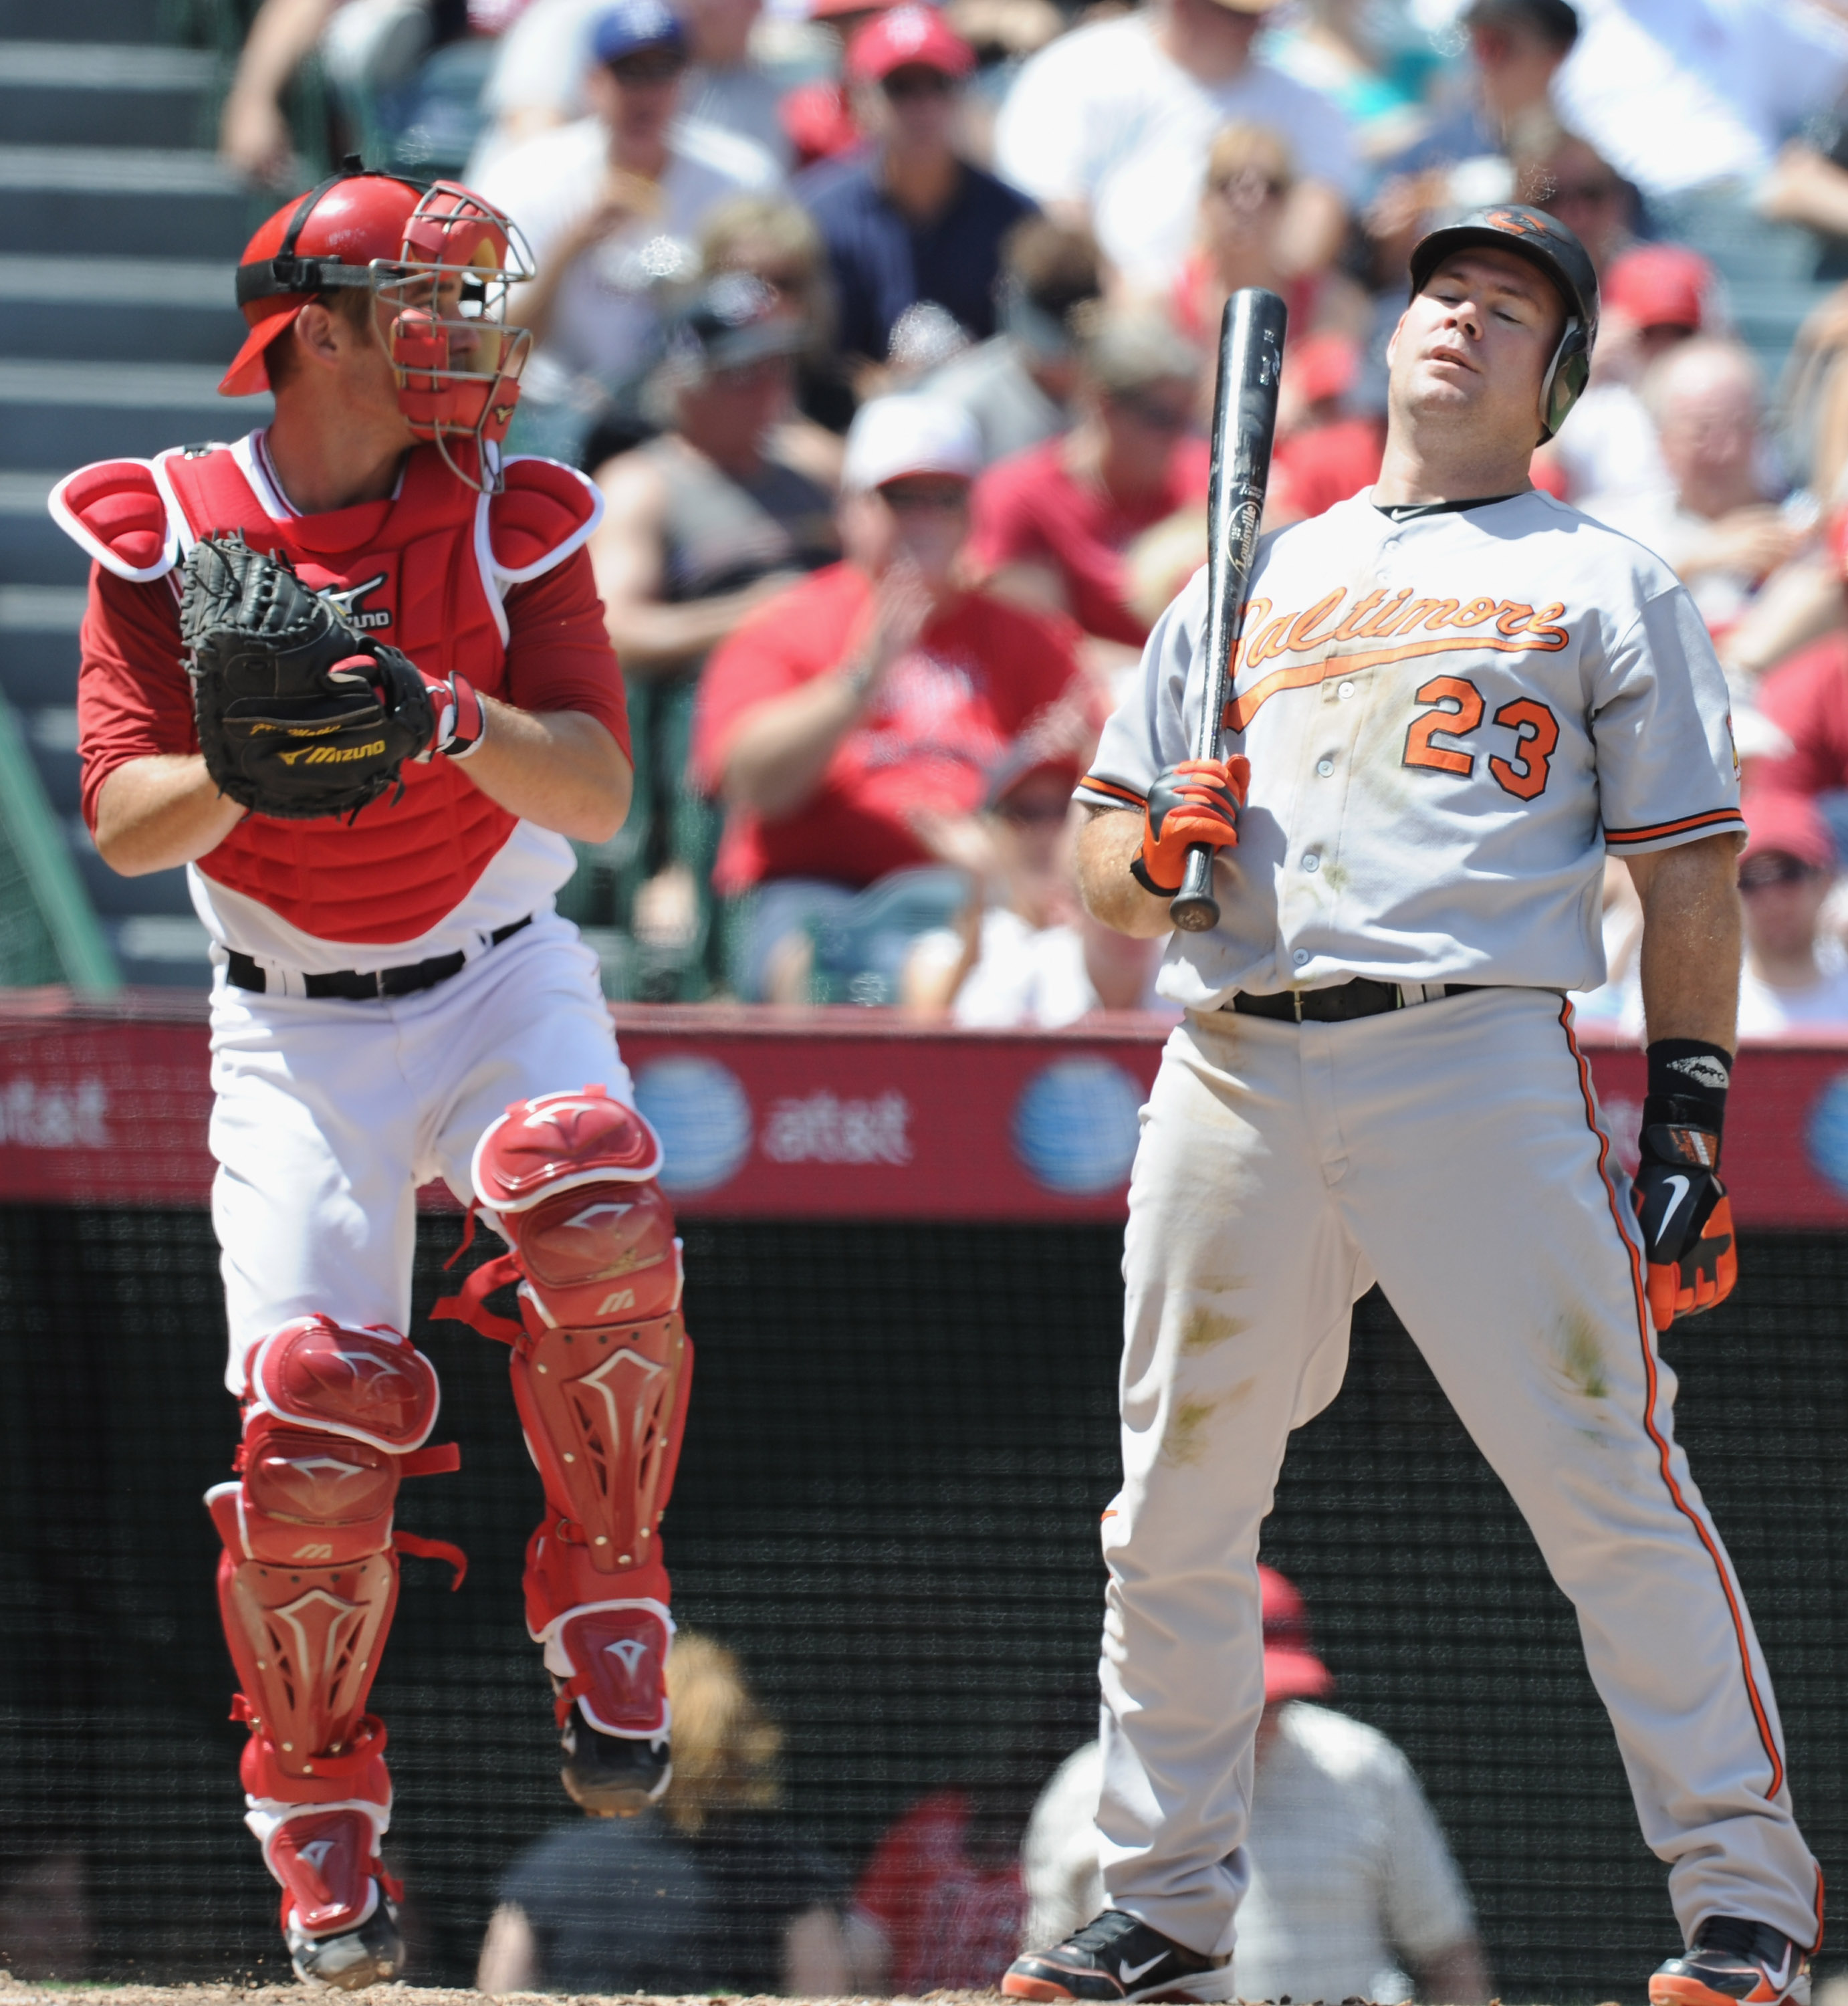 ANAHEIM, CA - AUGUST 29:  Ty Wigginton #23 of the Baltimore Orioles reacts to his strikeout in front of Jeff Mathis #5 of the Los Angeles Angels of Anaheim at Angel Stadium on August 29, 2010 in Anaheim, California.  (Photo by Harry How/Getty Images)